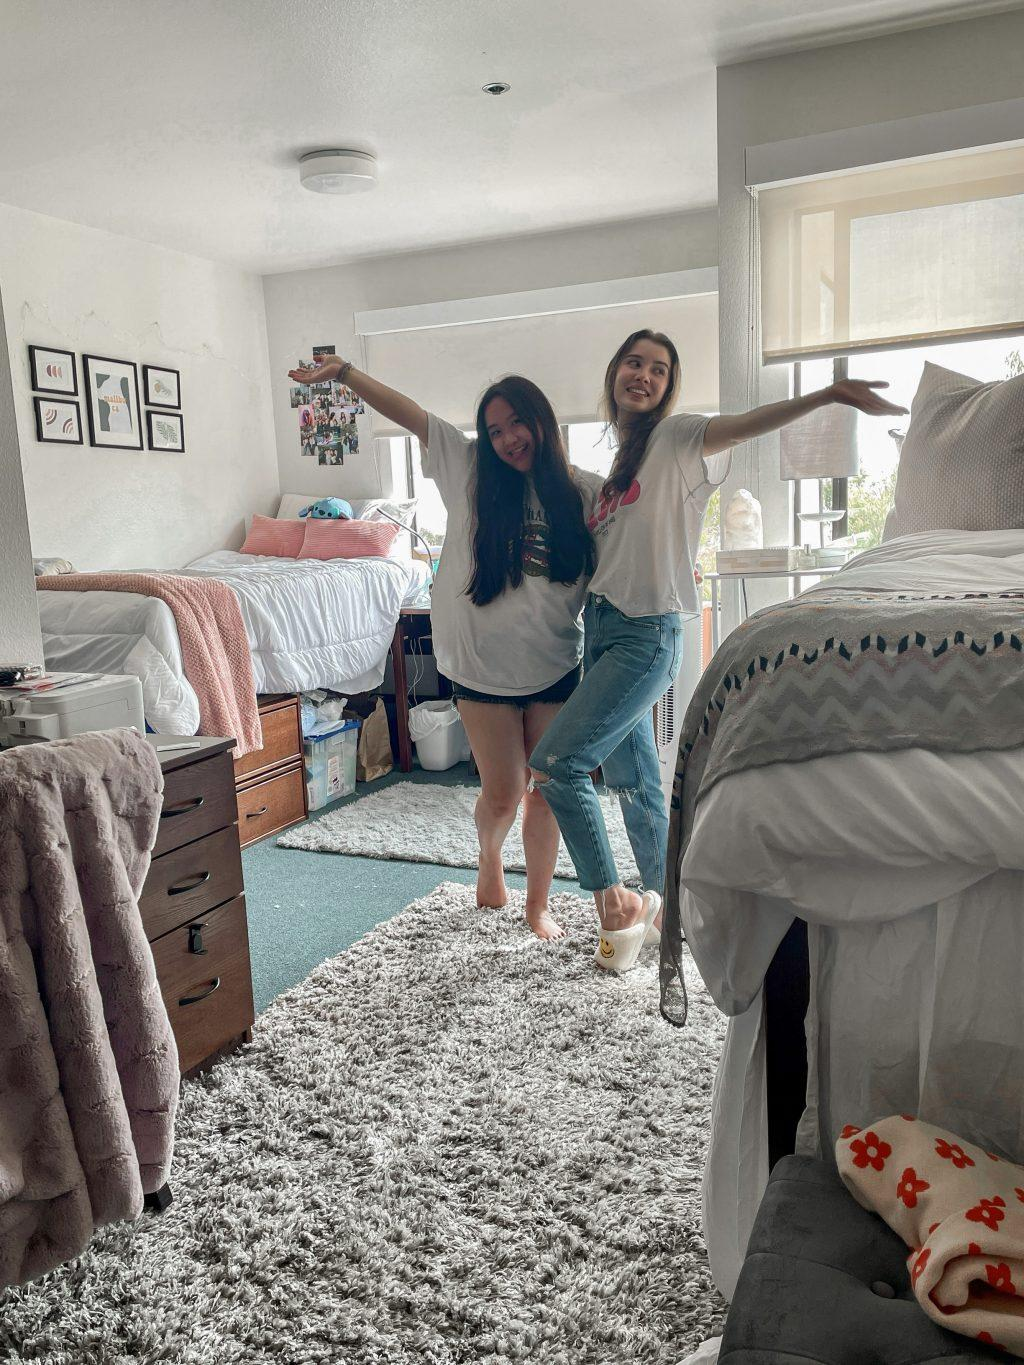 Sophomore Nathania Au and her roommate Liza Esquibias pose in their decorated room Aug. 24. Au said she and her roommate found inspiration for their room on Pinterest, TikTok and Instagram. Photo Courtesy of Nathania Au